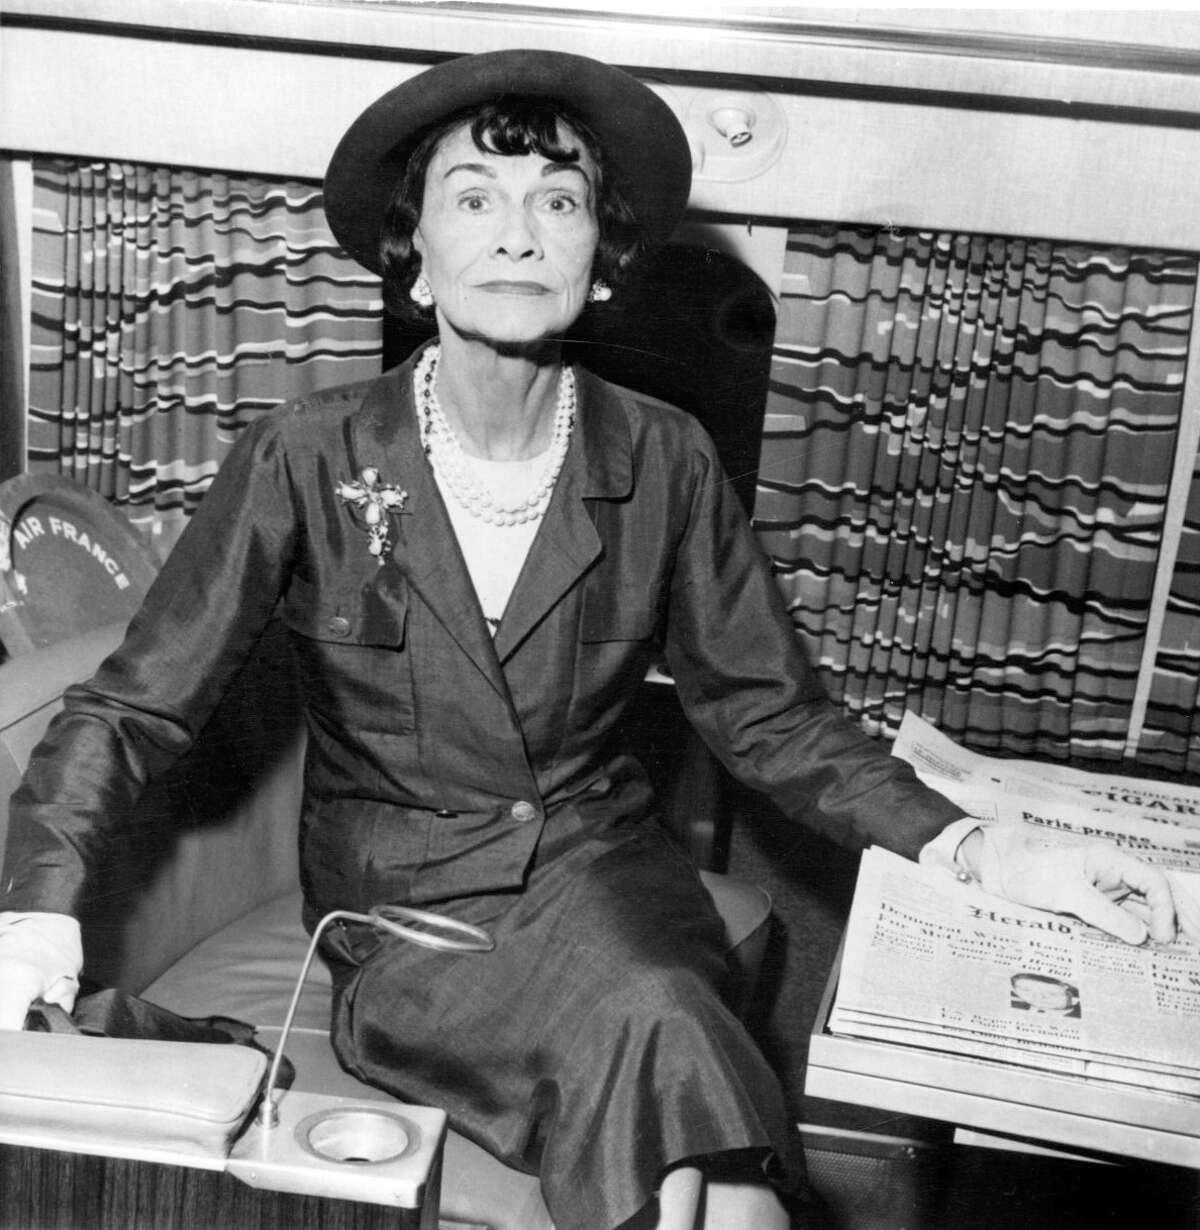 """This undated photo shows French fashion designer Gabrielle """"Coco"""" Chanel, a fashion icon whose name has become shorthand for timeless French chic, at an undisclosed location. A new book published in the U.S on Tuesday, Aug. 16, 2011, by Knopf, suggests Chanel not only had a wartime affair with a German aristocrat and spy, but that she herself was also an agent of Germany's Abwehr military intelligence organization and a rabid anti-Semite. (AP Photo)"""